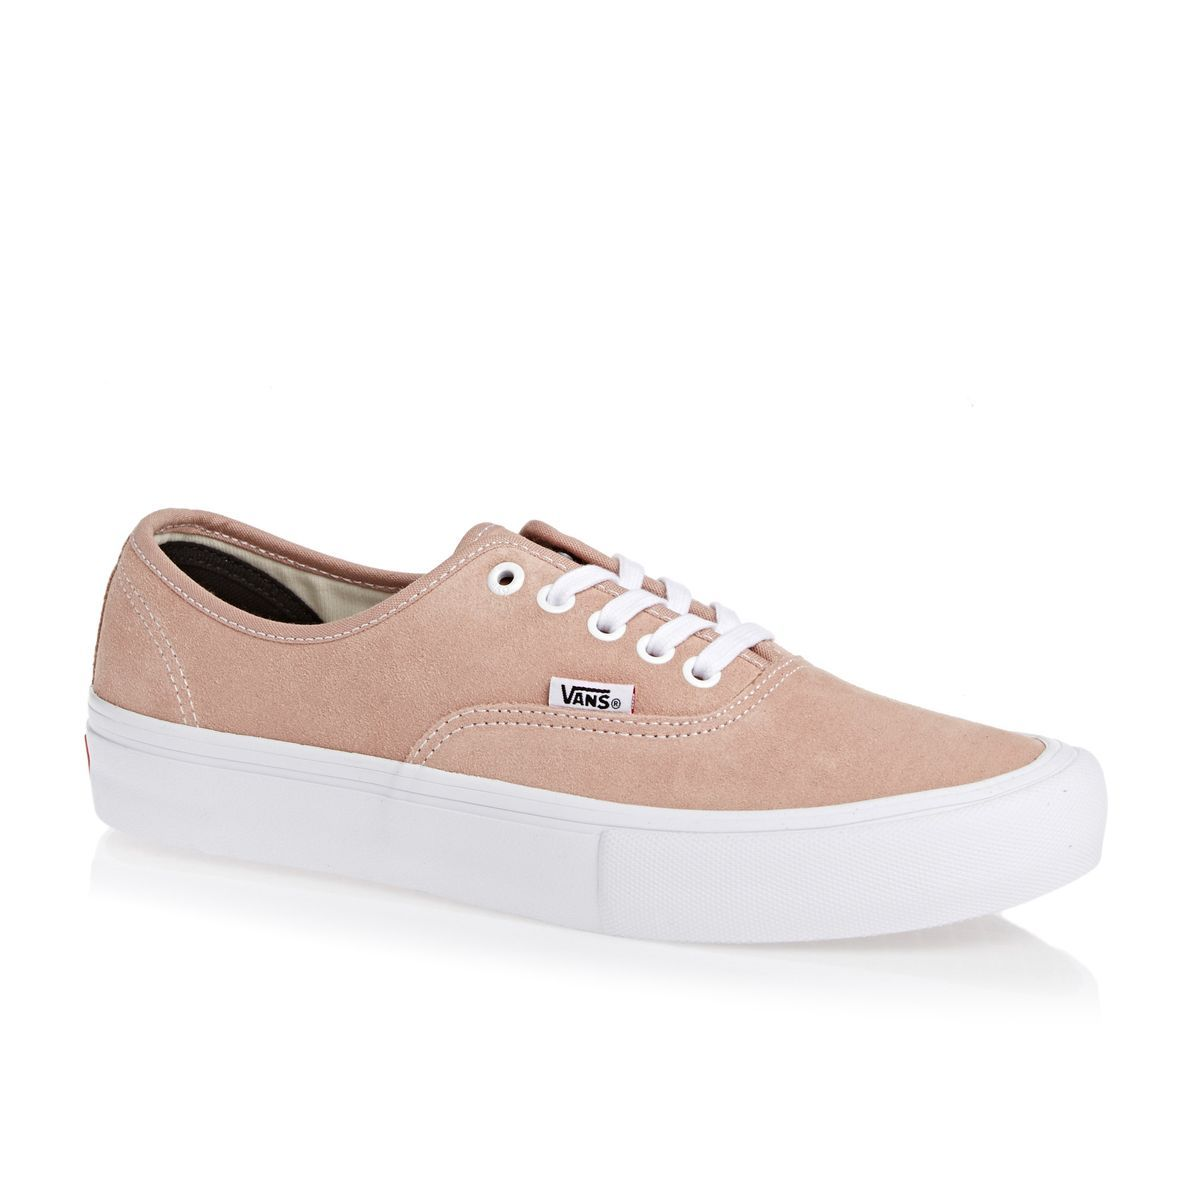 21933f31339 Buy Vans Pro Skate Men s Authentic Pro Skate Shoes Mahogany Rose  White  with great prices at surfdome.us